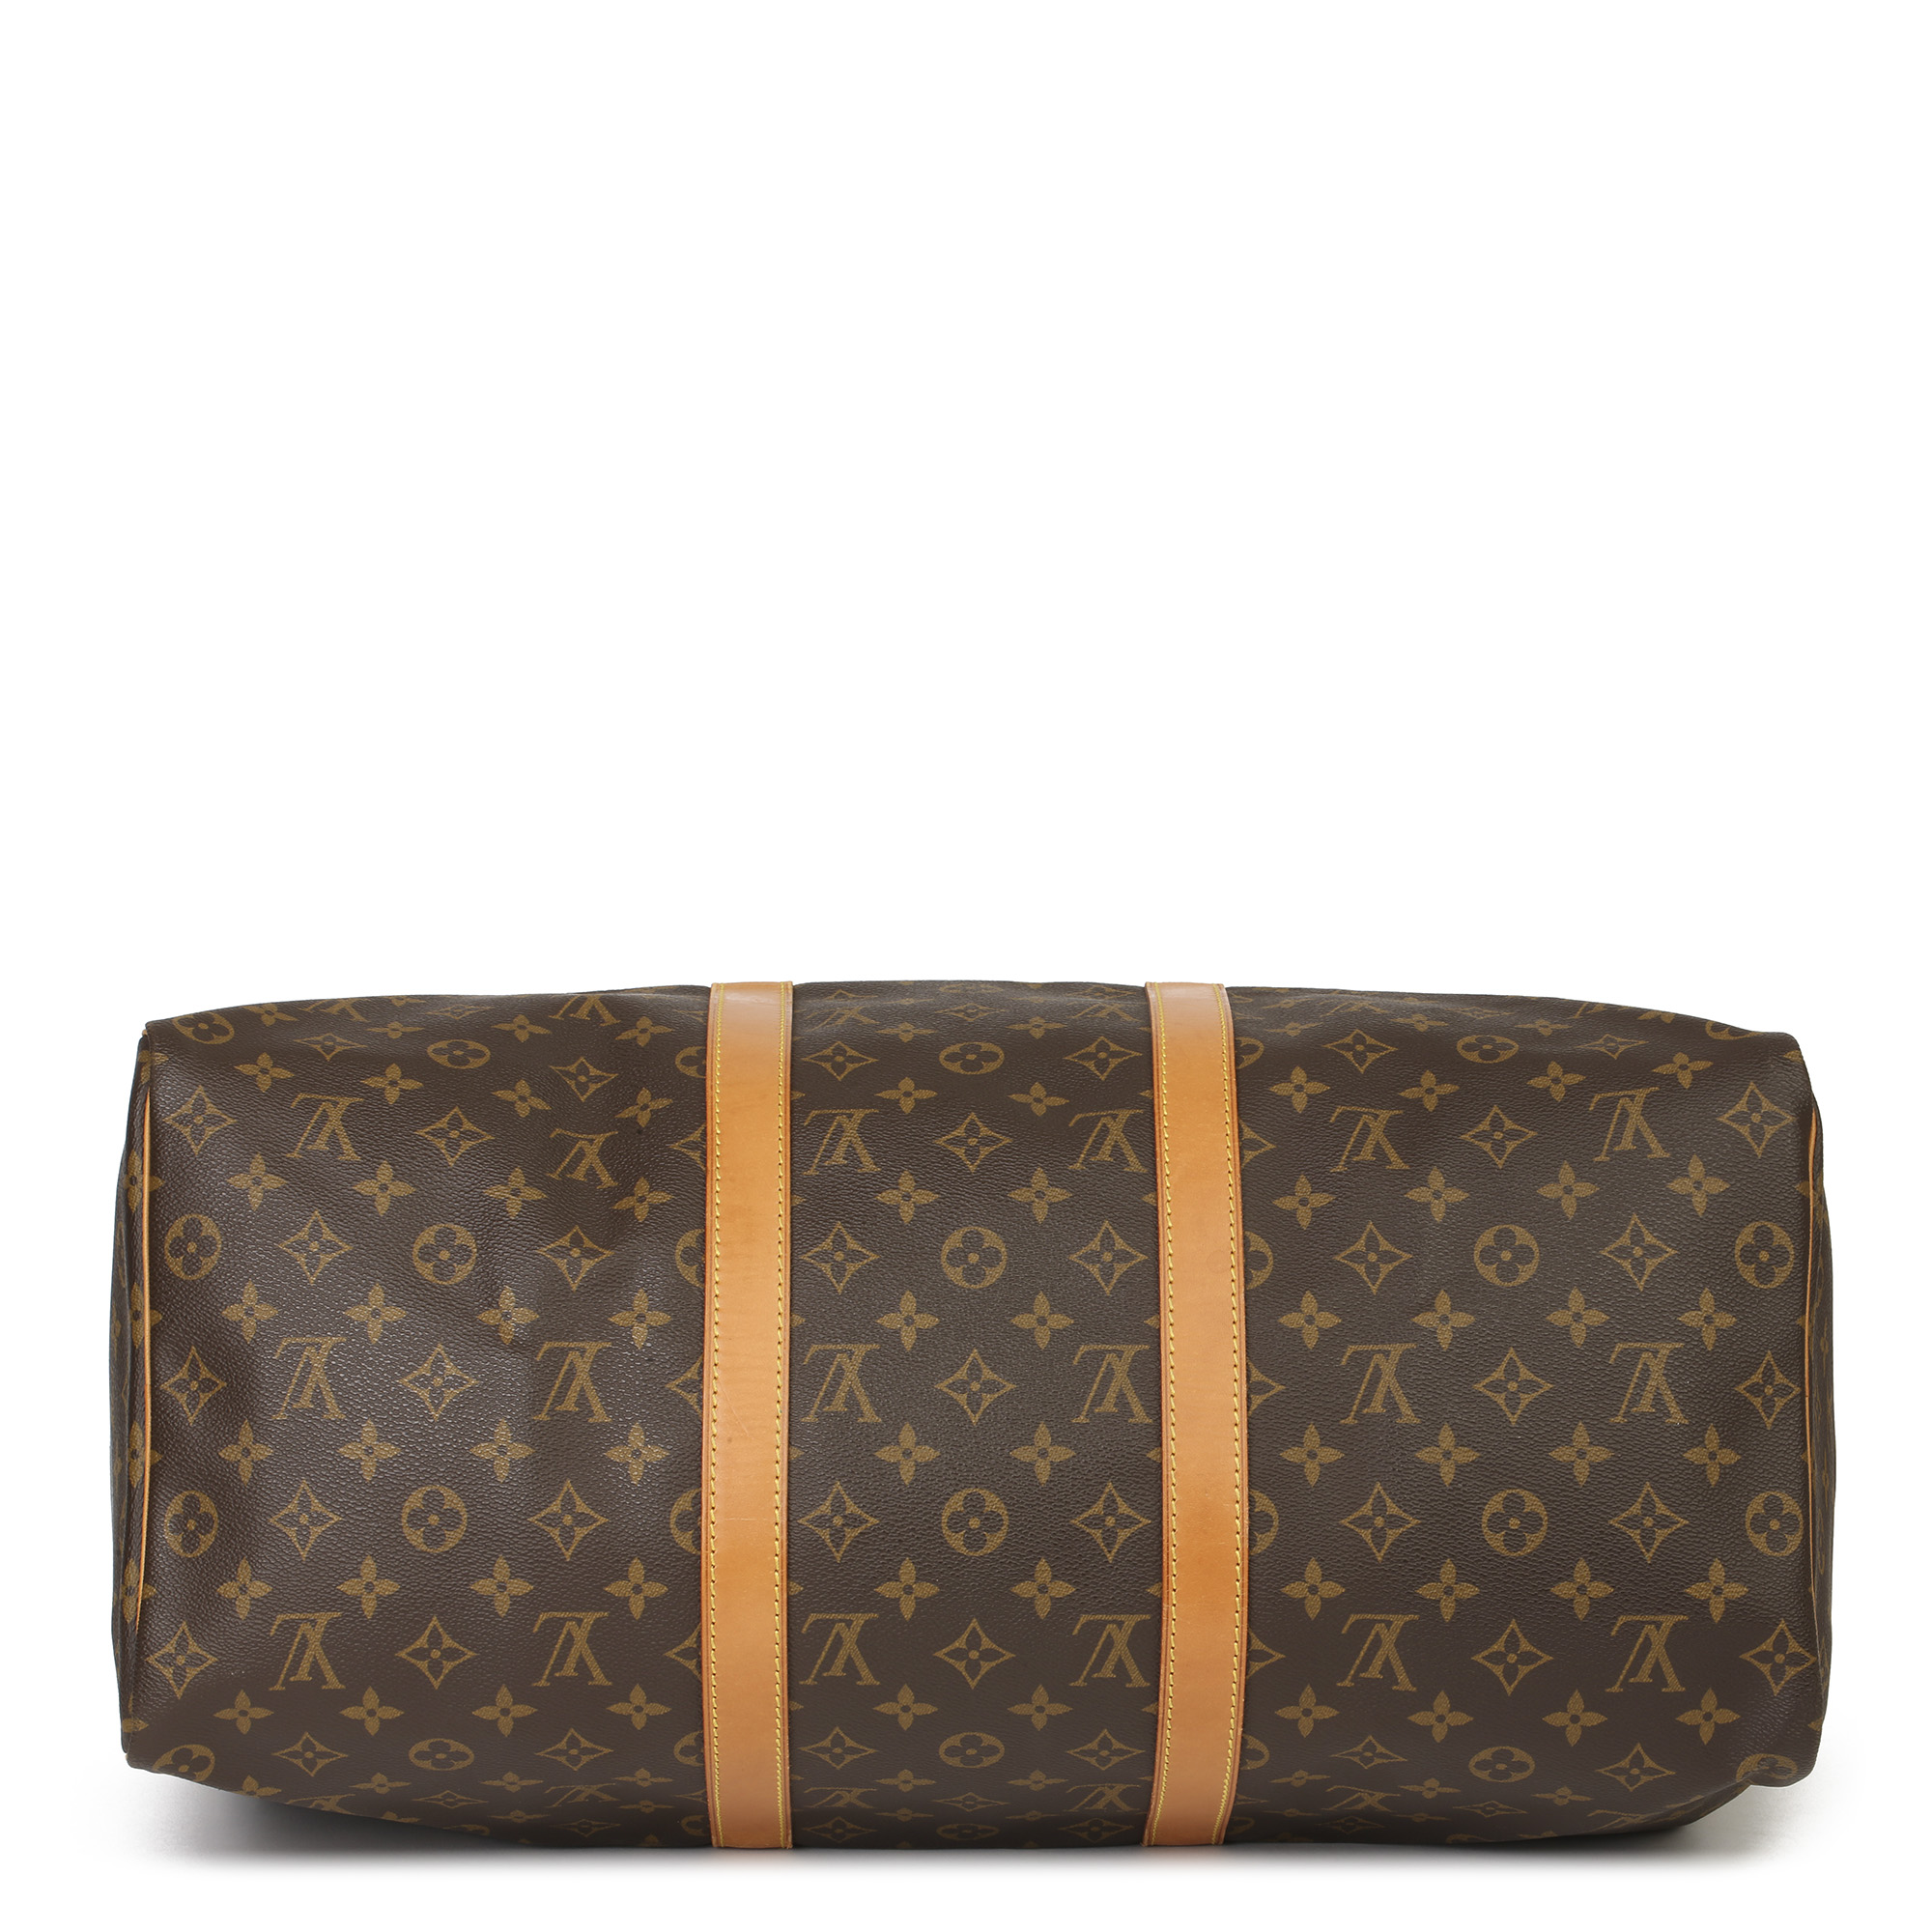 Louis Vuitton Brown Monogram Coated Canvas & Vachetta Leather Vintage Keepall 50 - Image 8 of 11